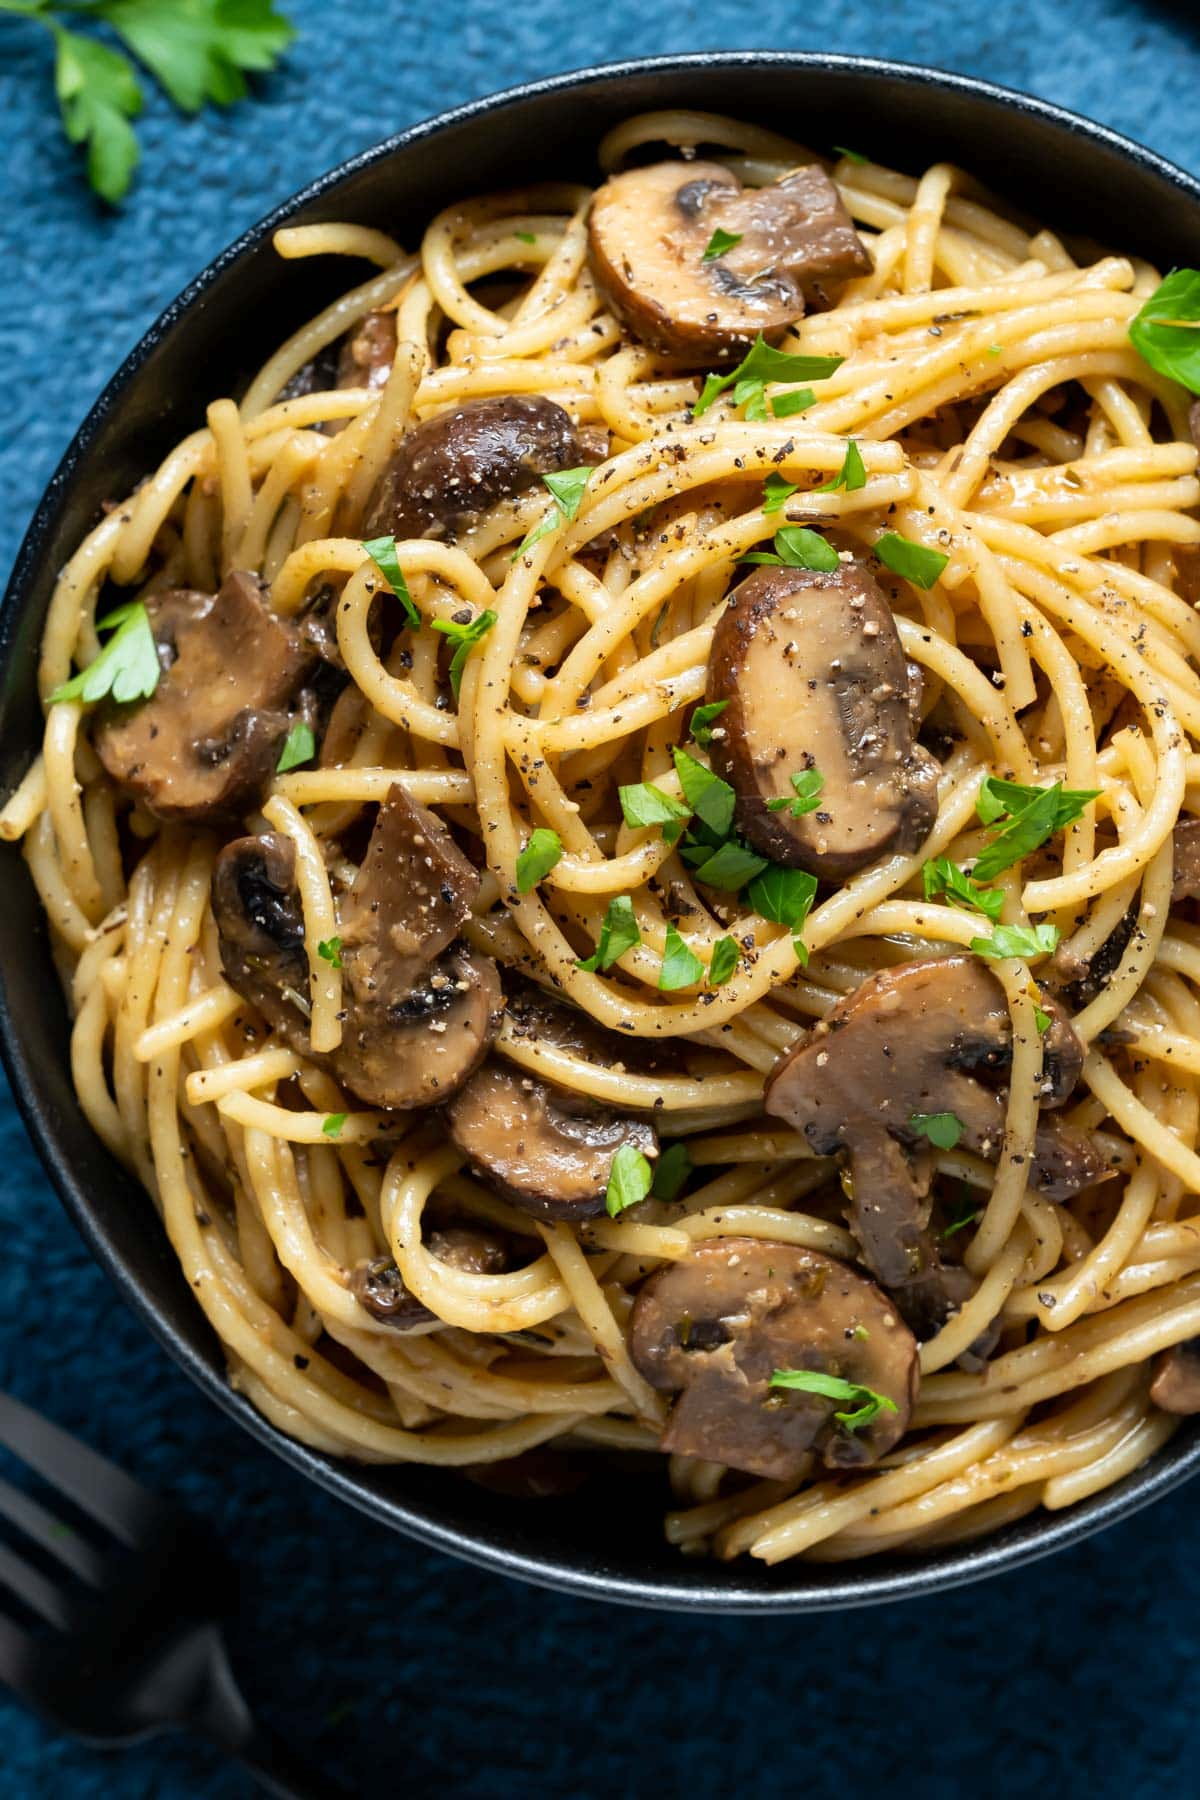 Pasta with mushrooms and fresh chopped parsley in a black bowl.